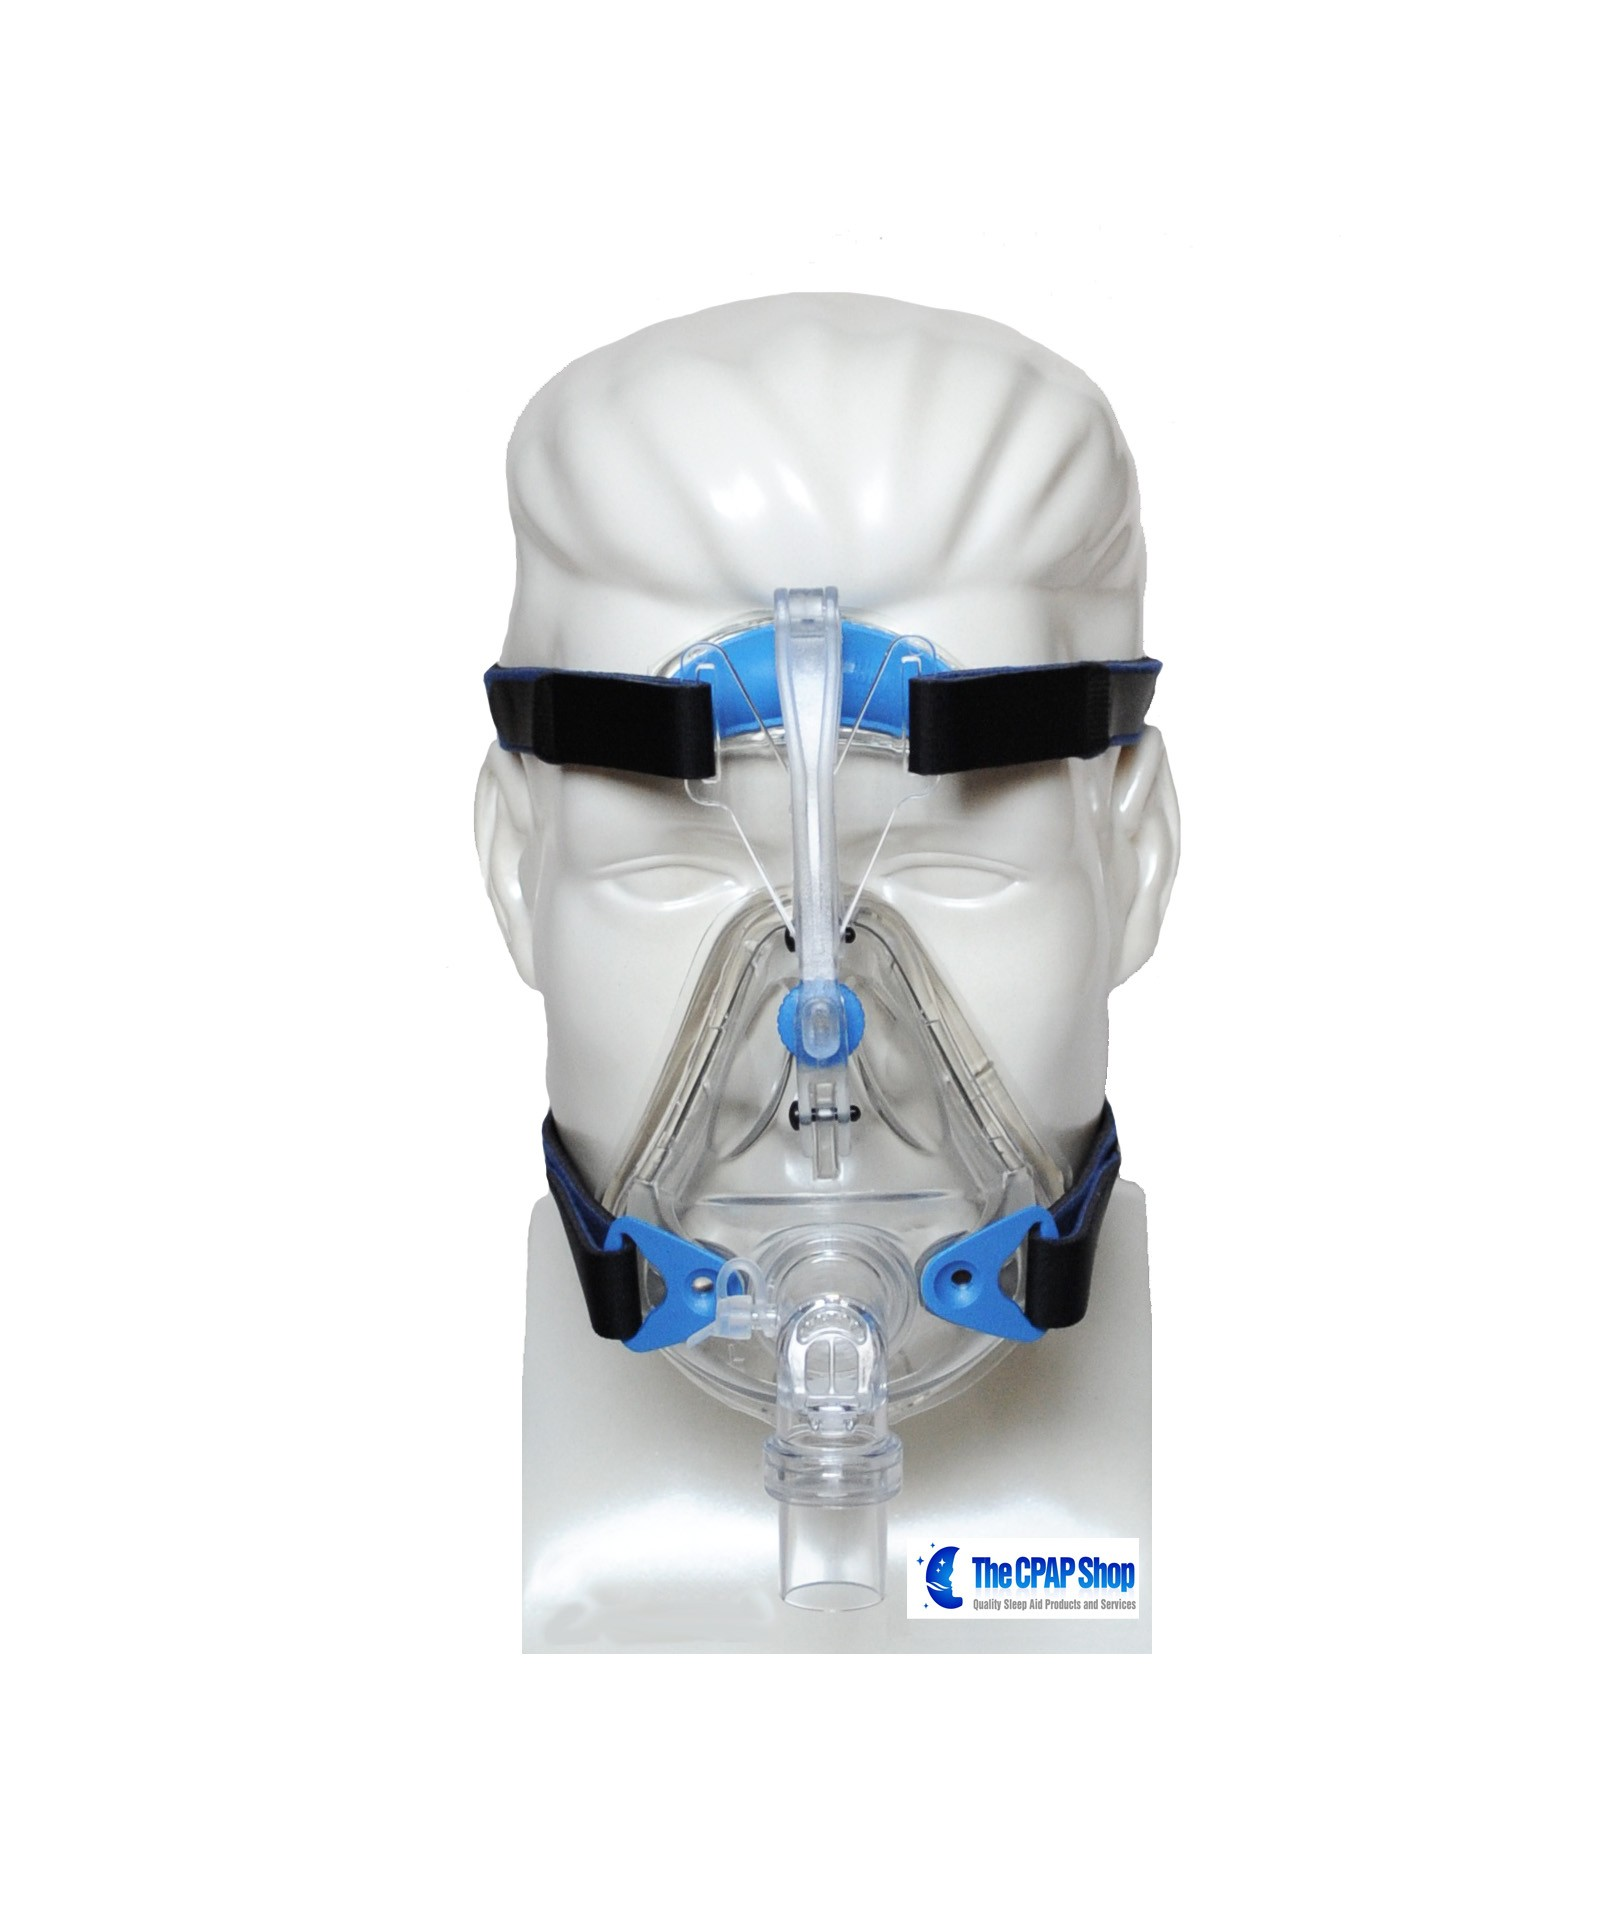 SleepNet Mojo Gel Cushion Full Face CPAP Mask with Headgear #6A6561